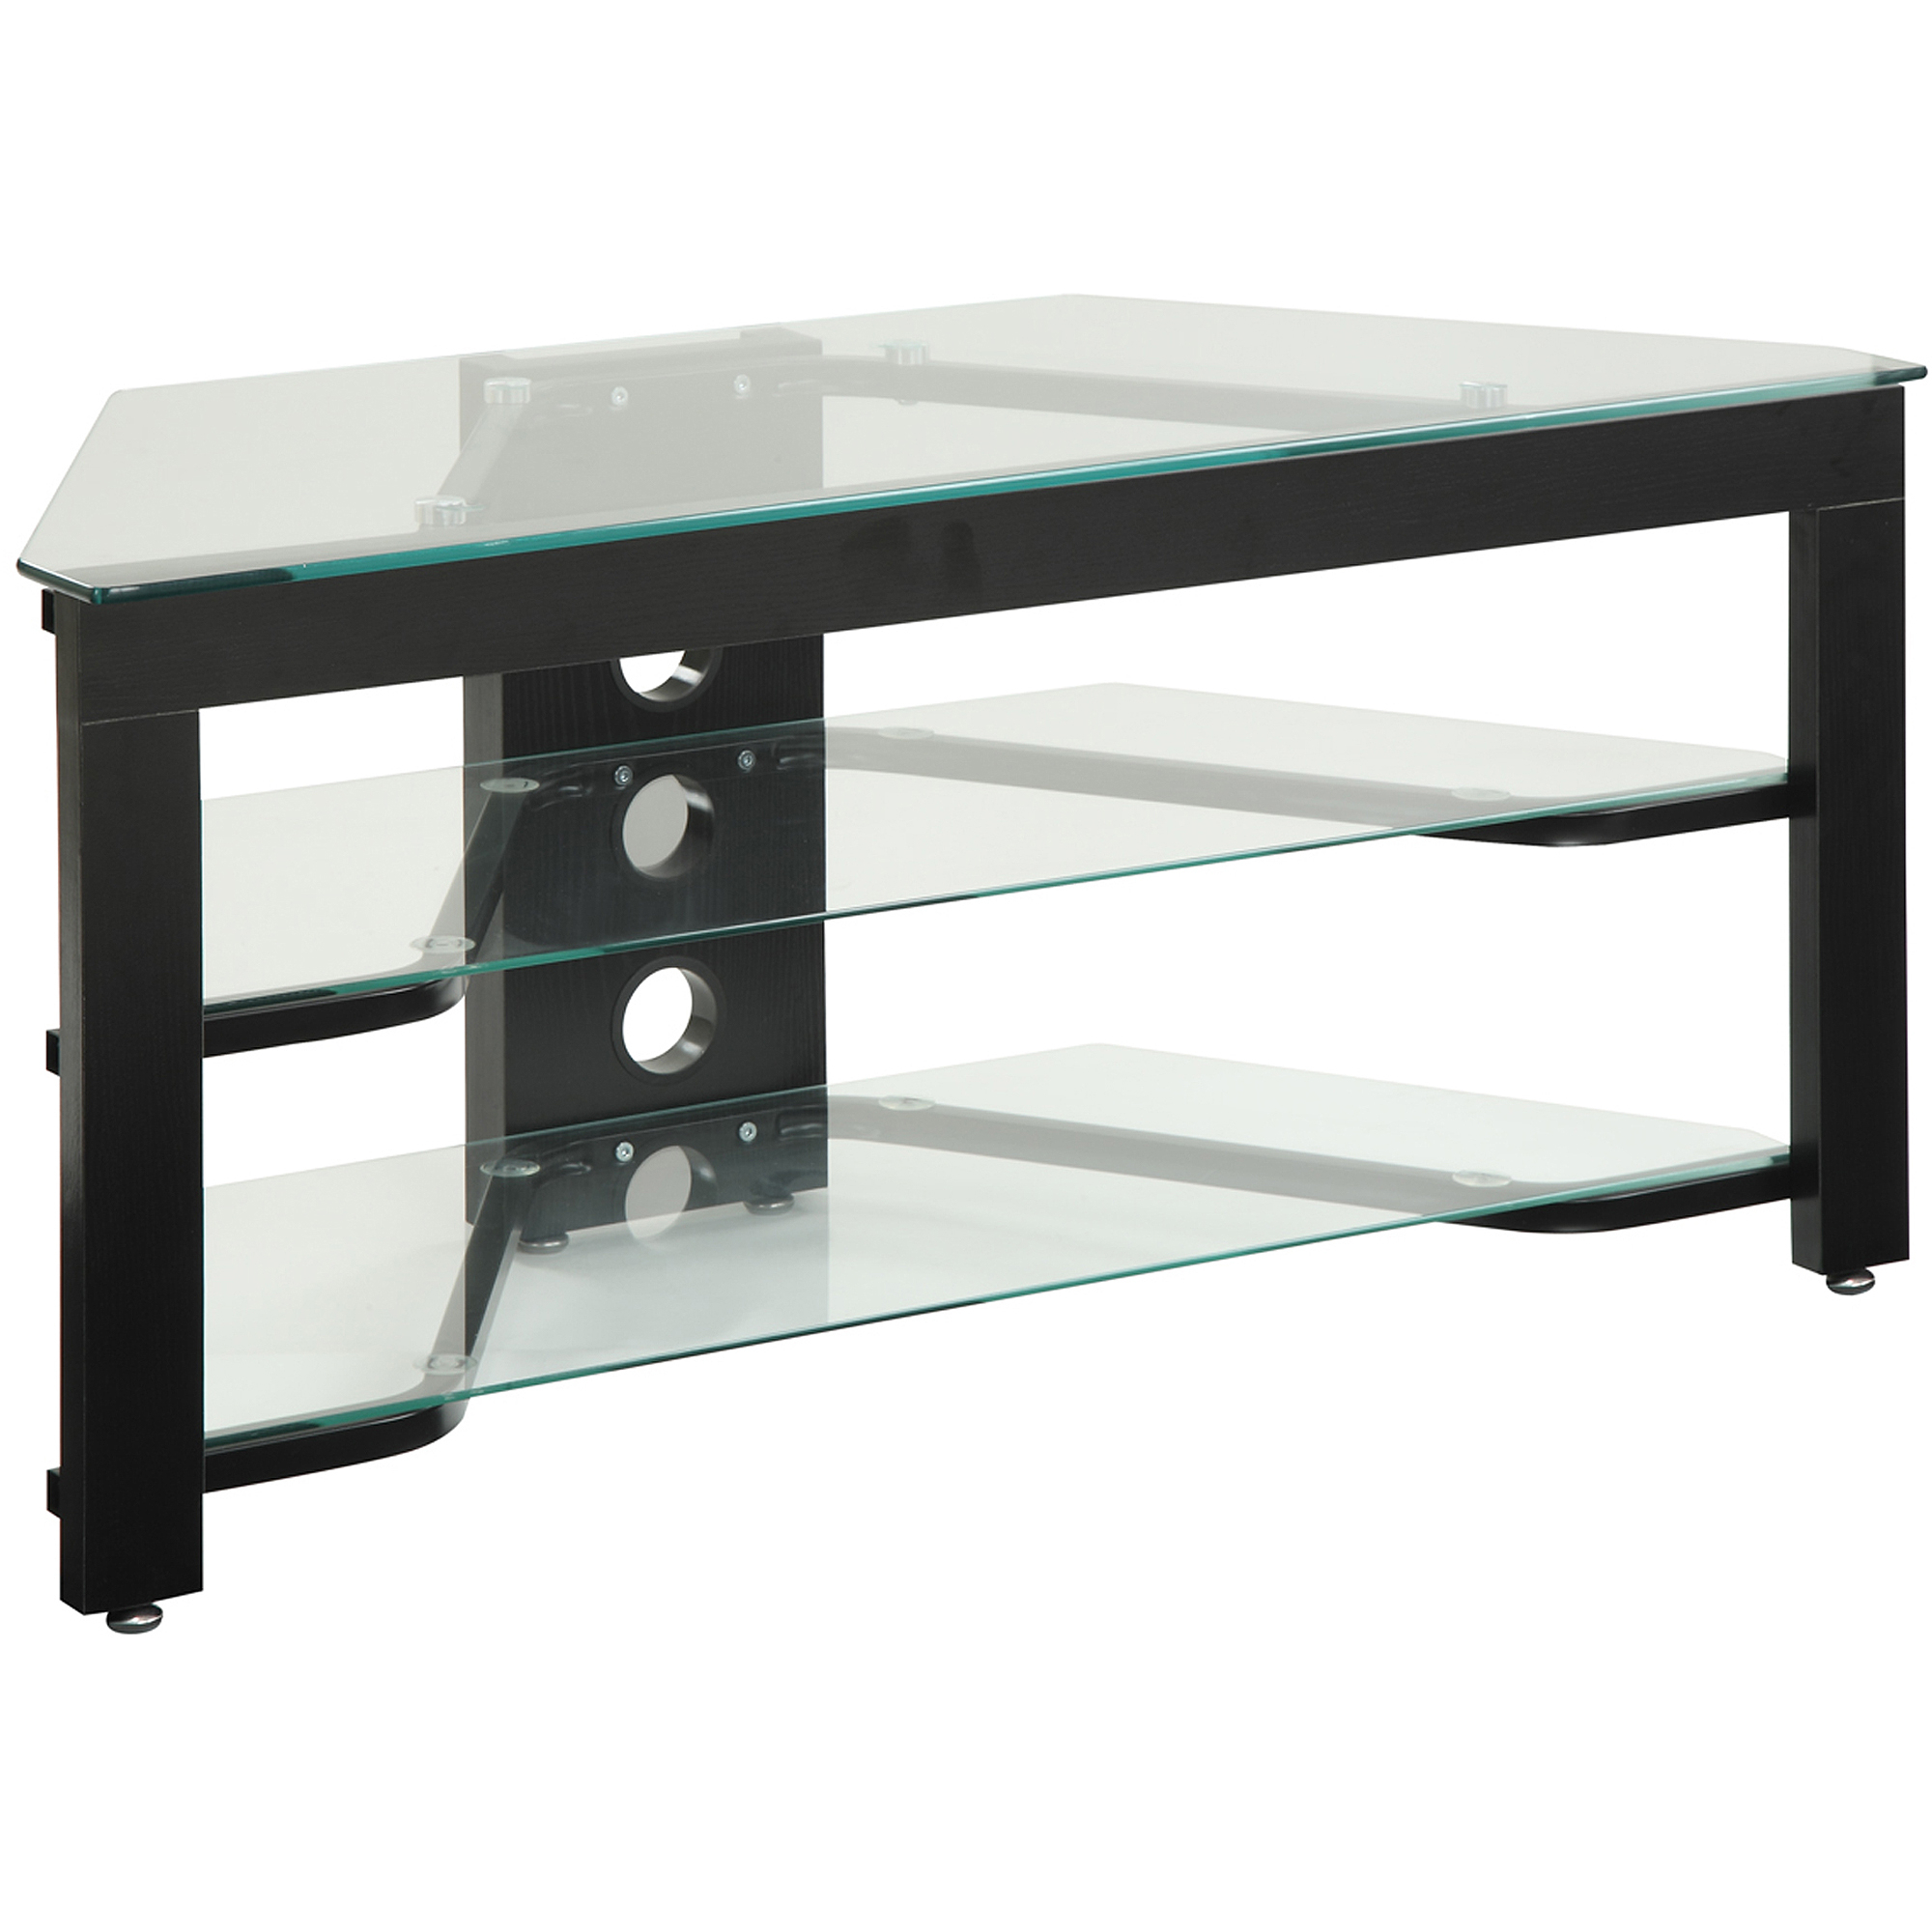 Black Glass Tv Stand (View 17 of 20)